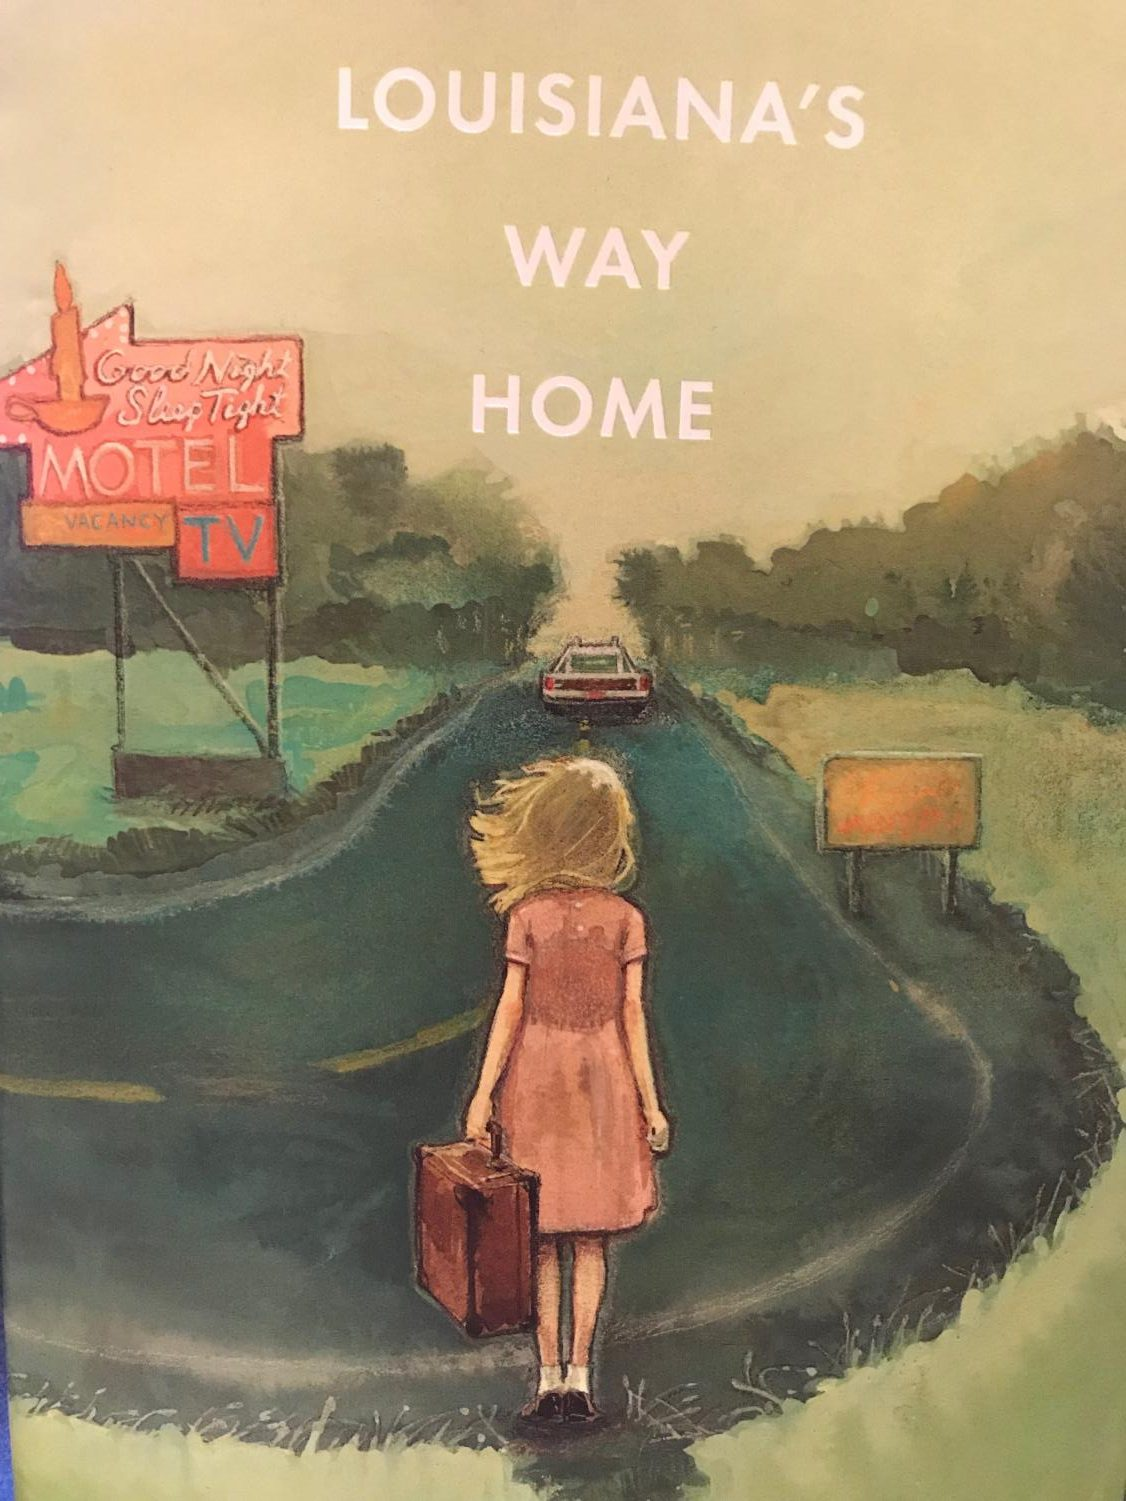 The cover of Kate DiCamillo's newest, highly-anticipated novel, Louisiana's Way Home.